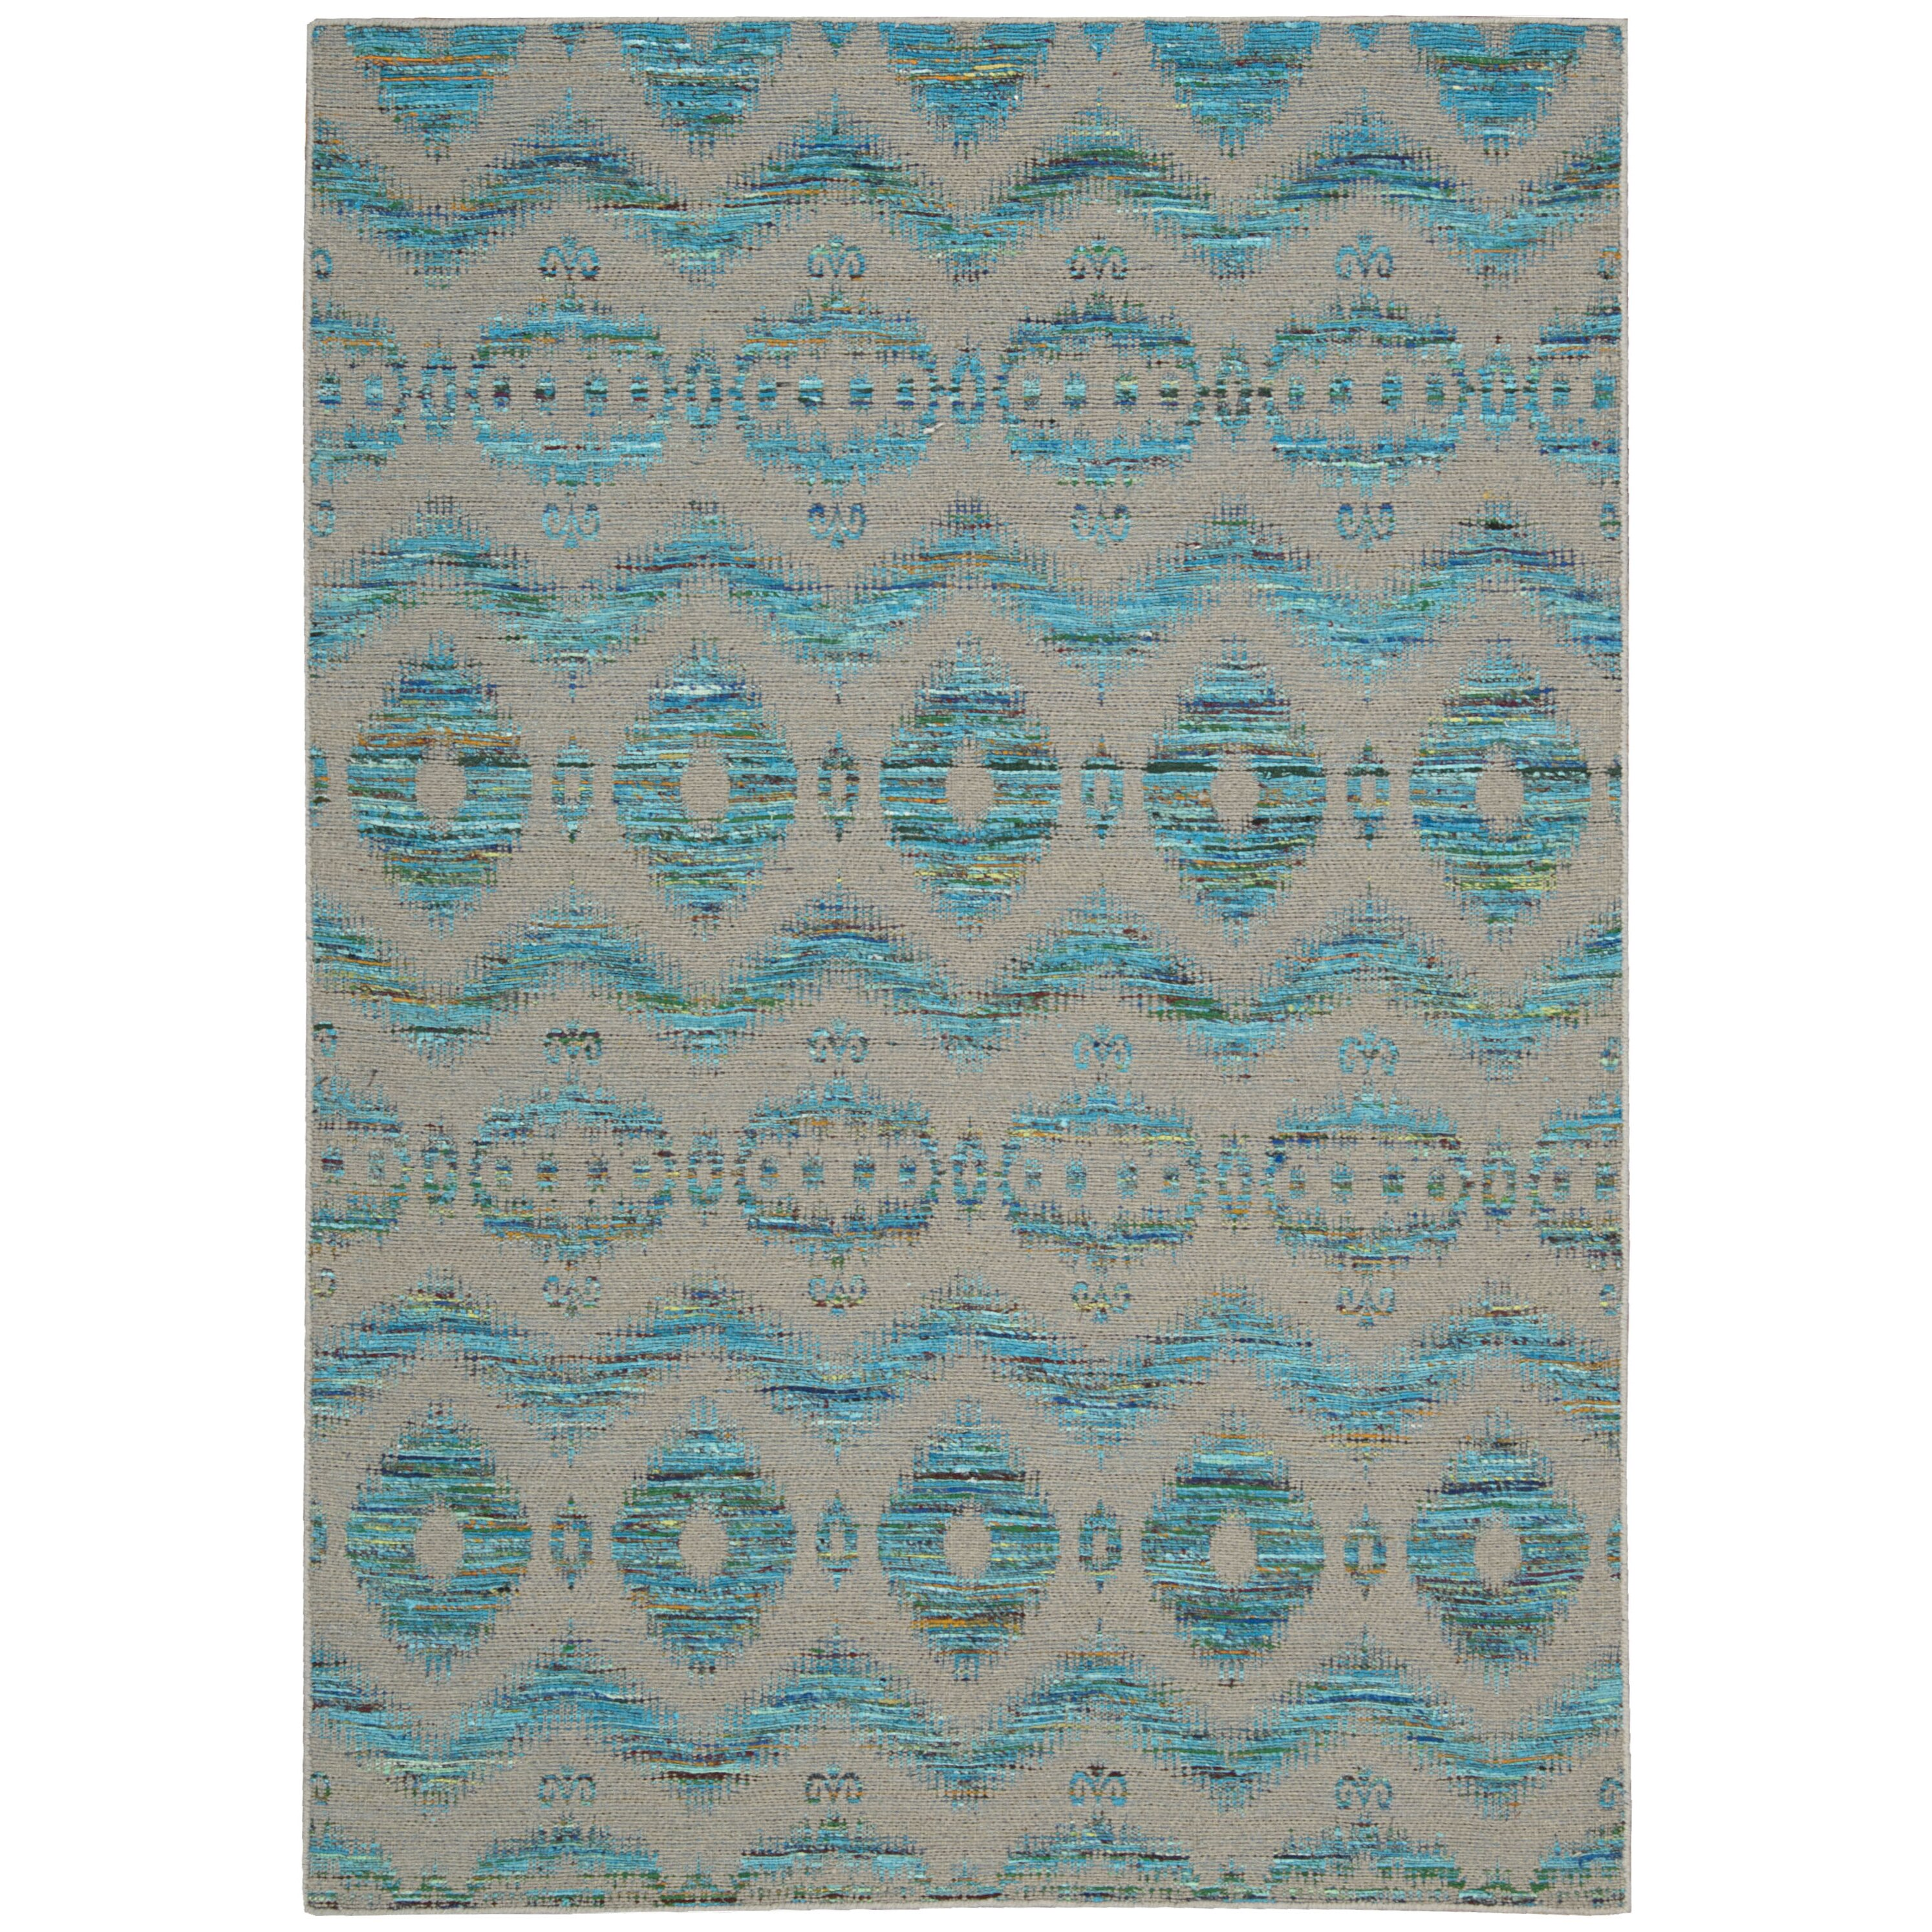 Florida Gray Turquoise Area Rug: Nourison Spectrum Turquoise Gray Rug & Reviews